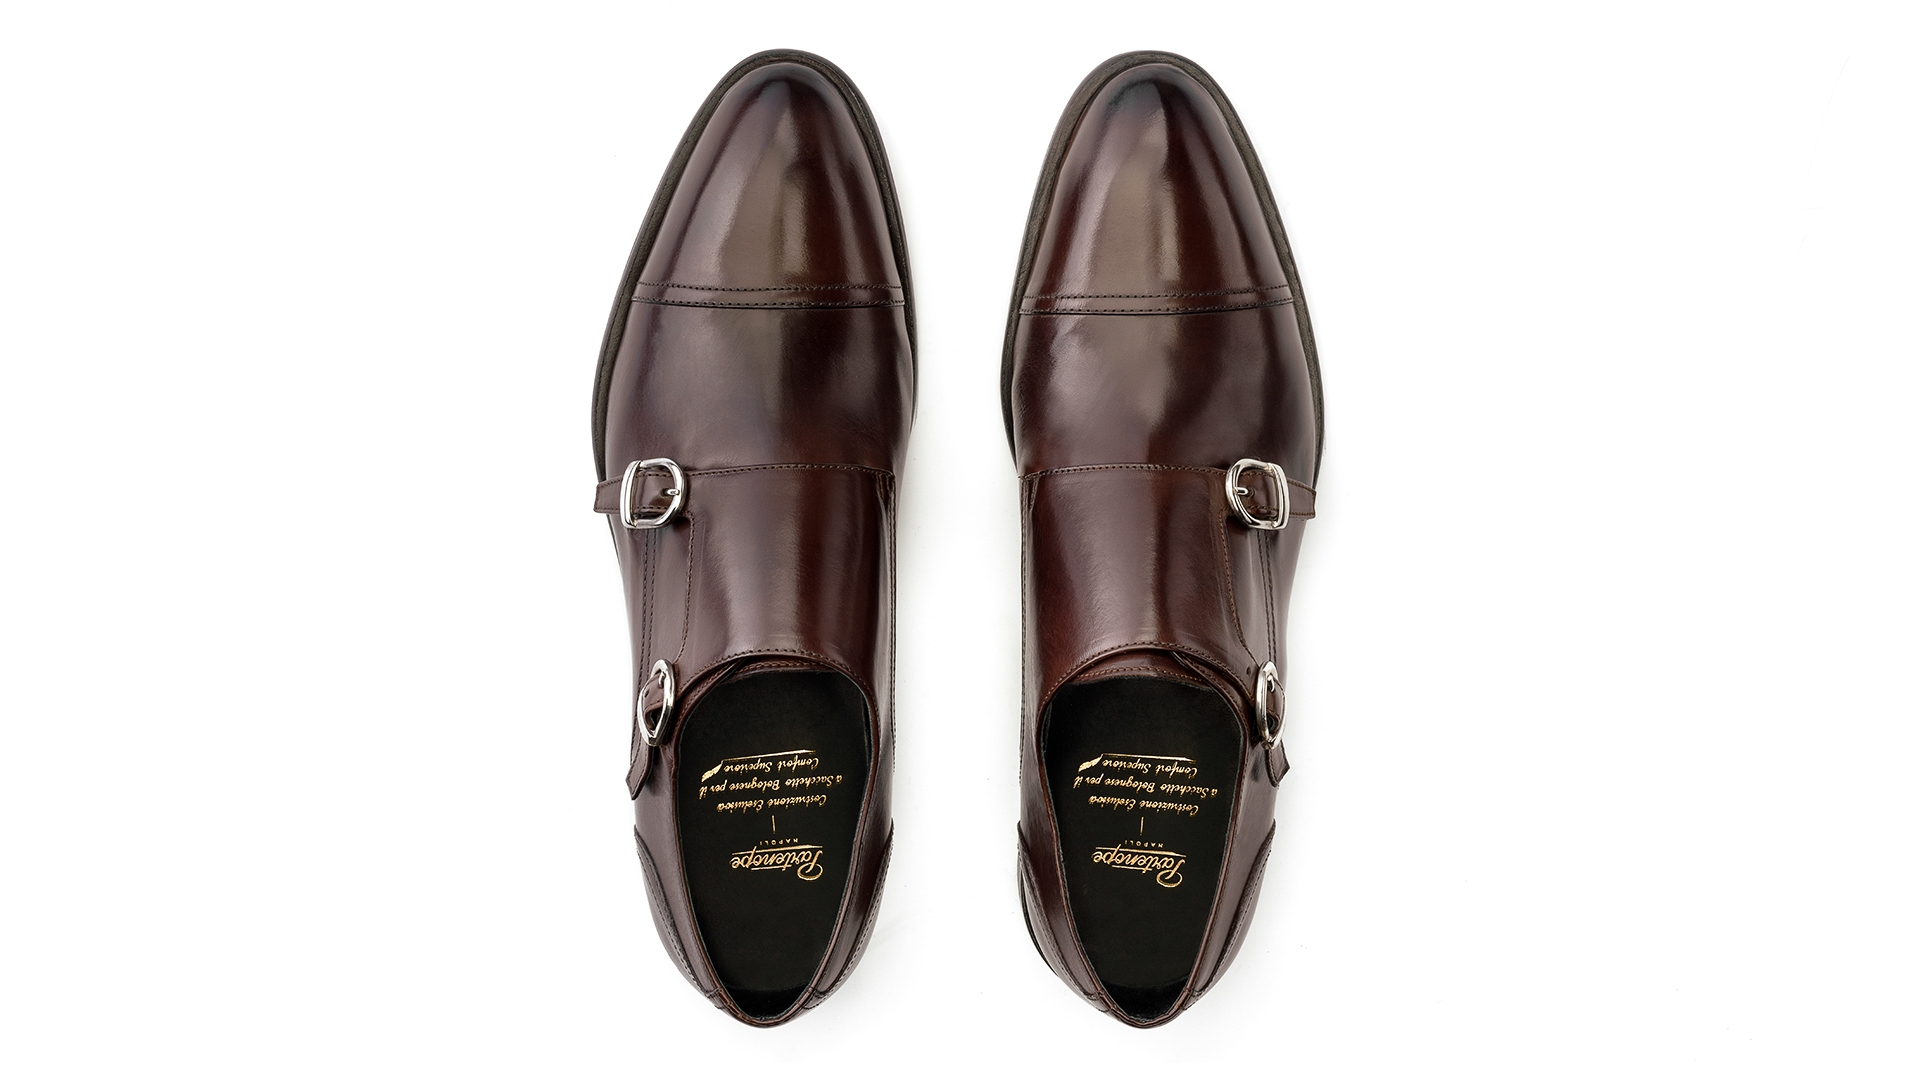 MONK SHOES Sacchetto Bolognese Brązowe